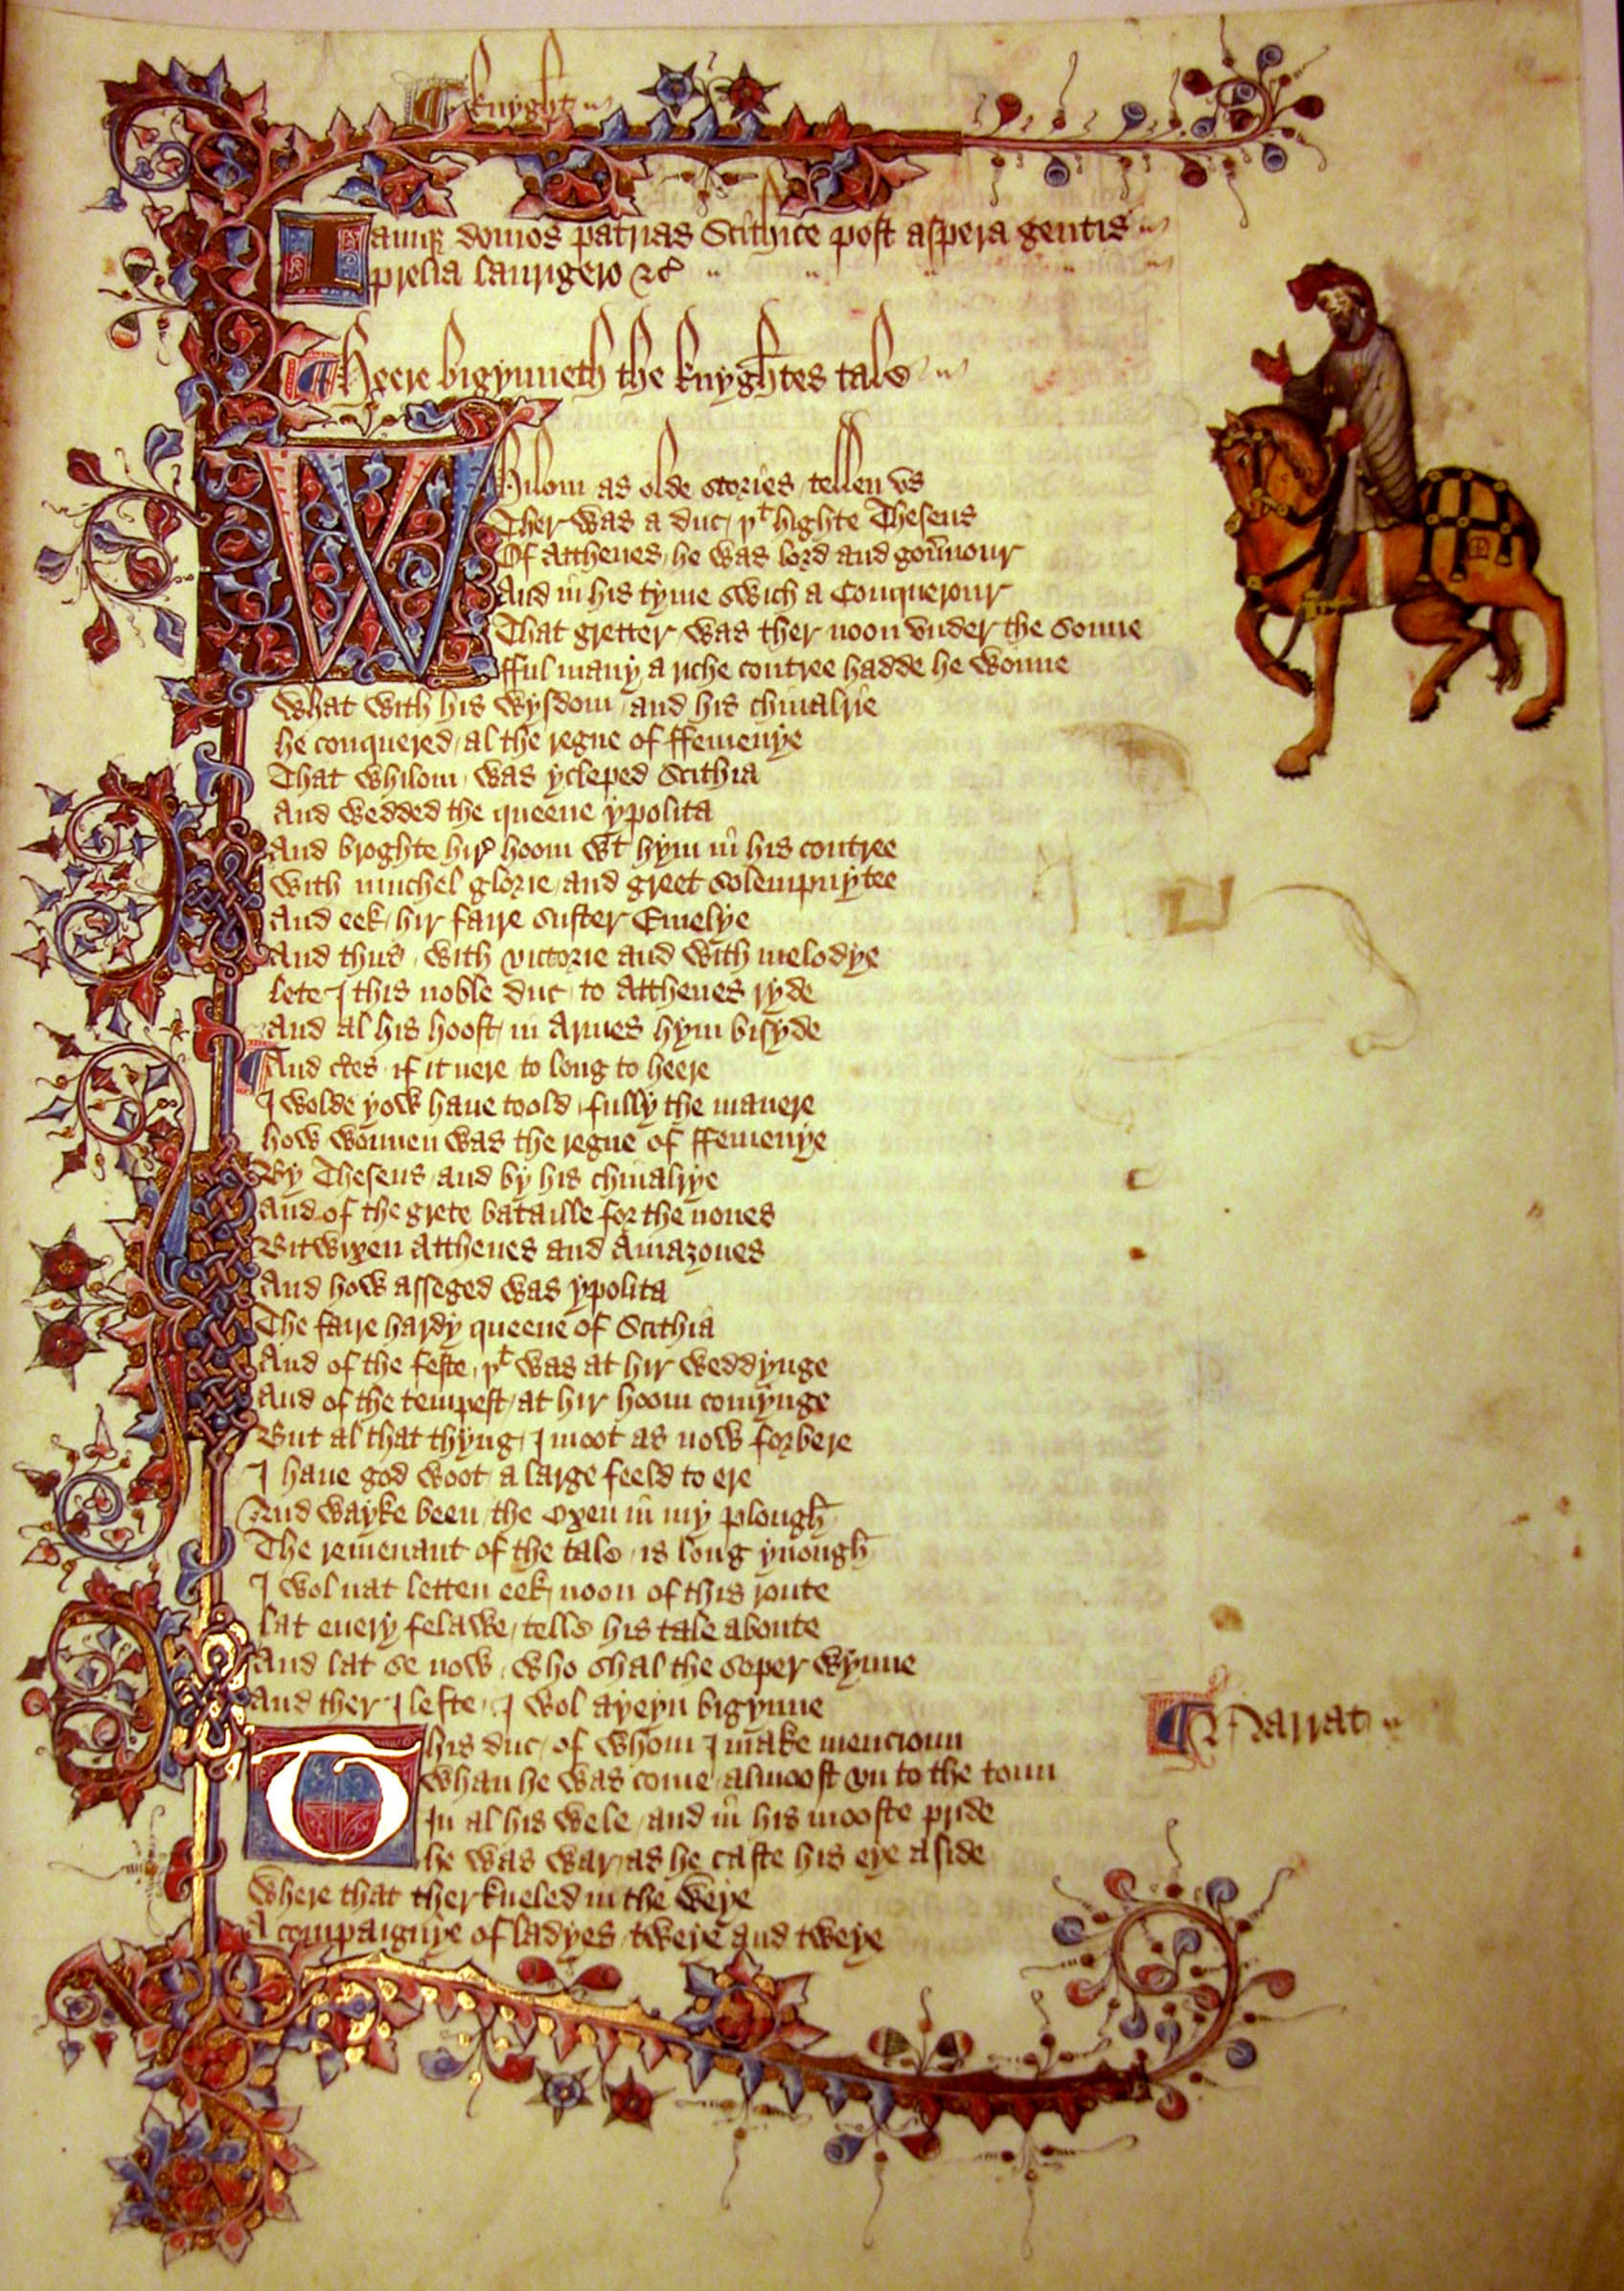 The Canterbury Tales By Geoffrey Chaucer British Literature Wiki The Canterbury Tales